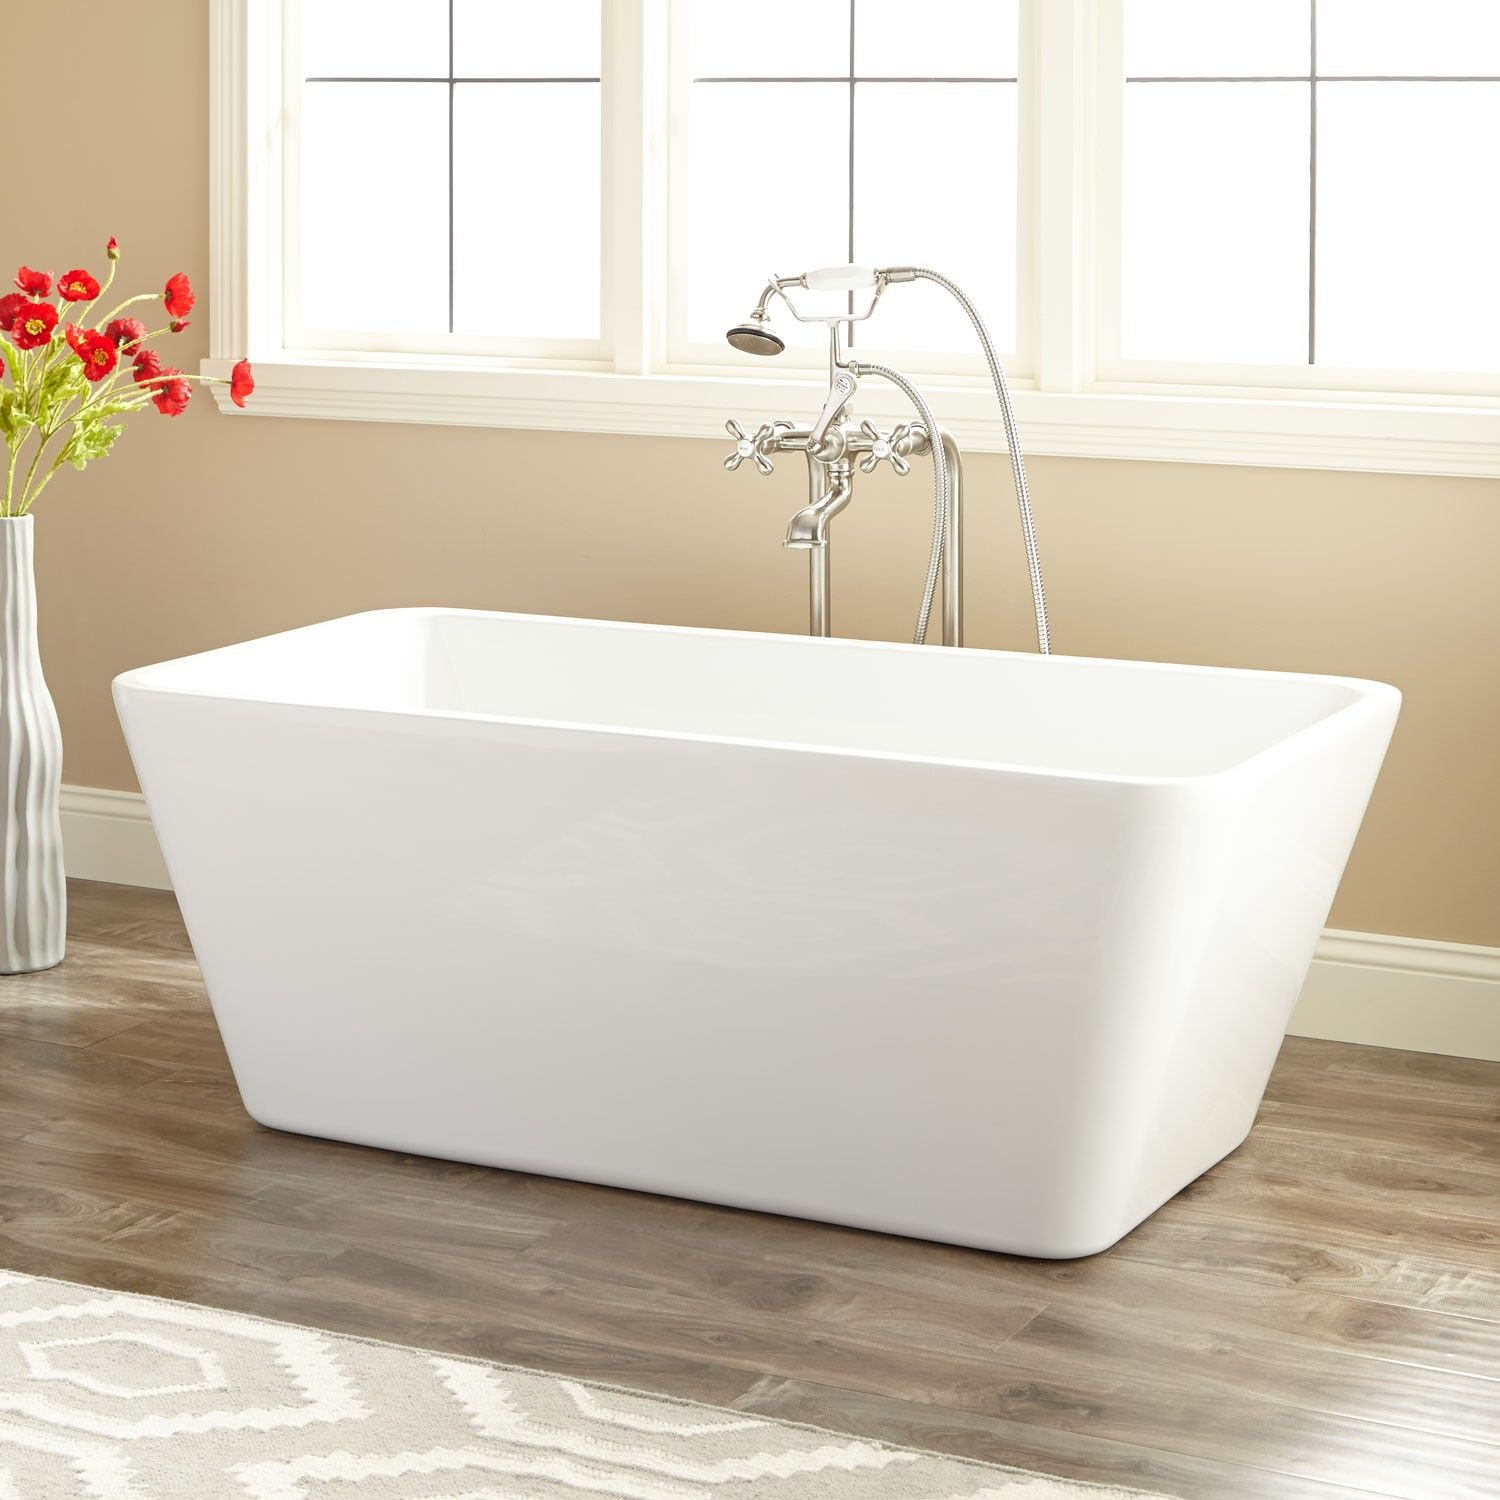 trim inch bathtub wyndham in maryam with angle collection white chrome polished tub soaking